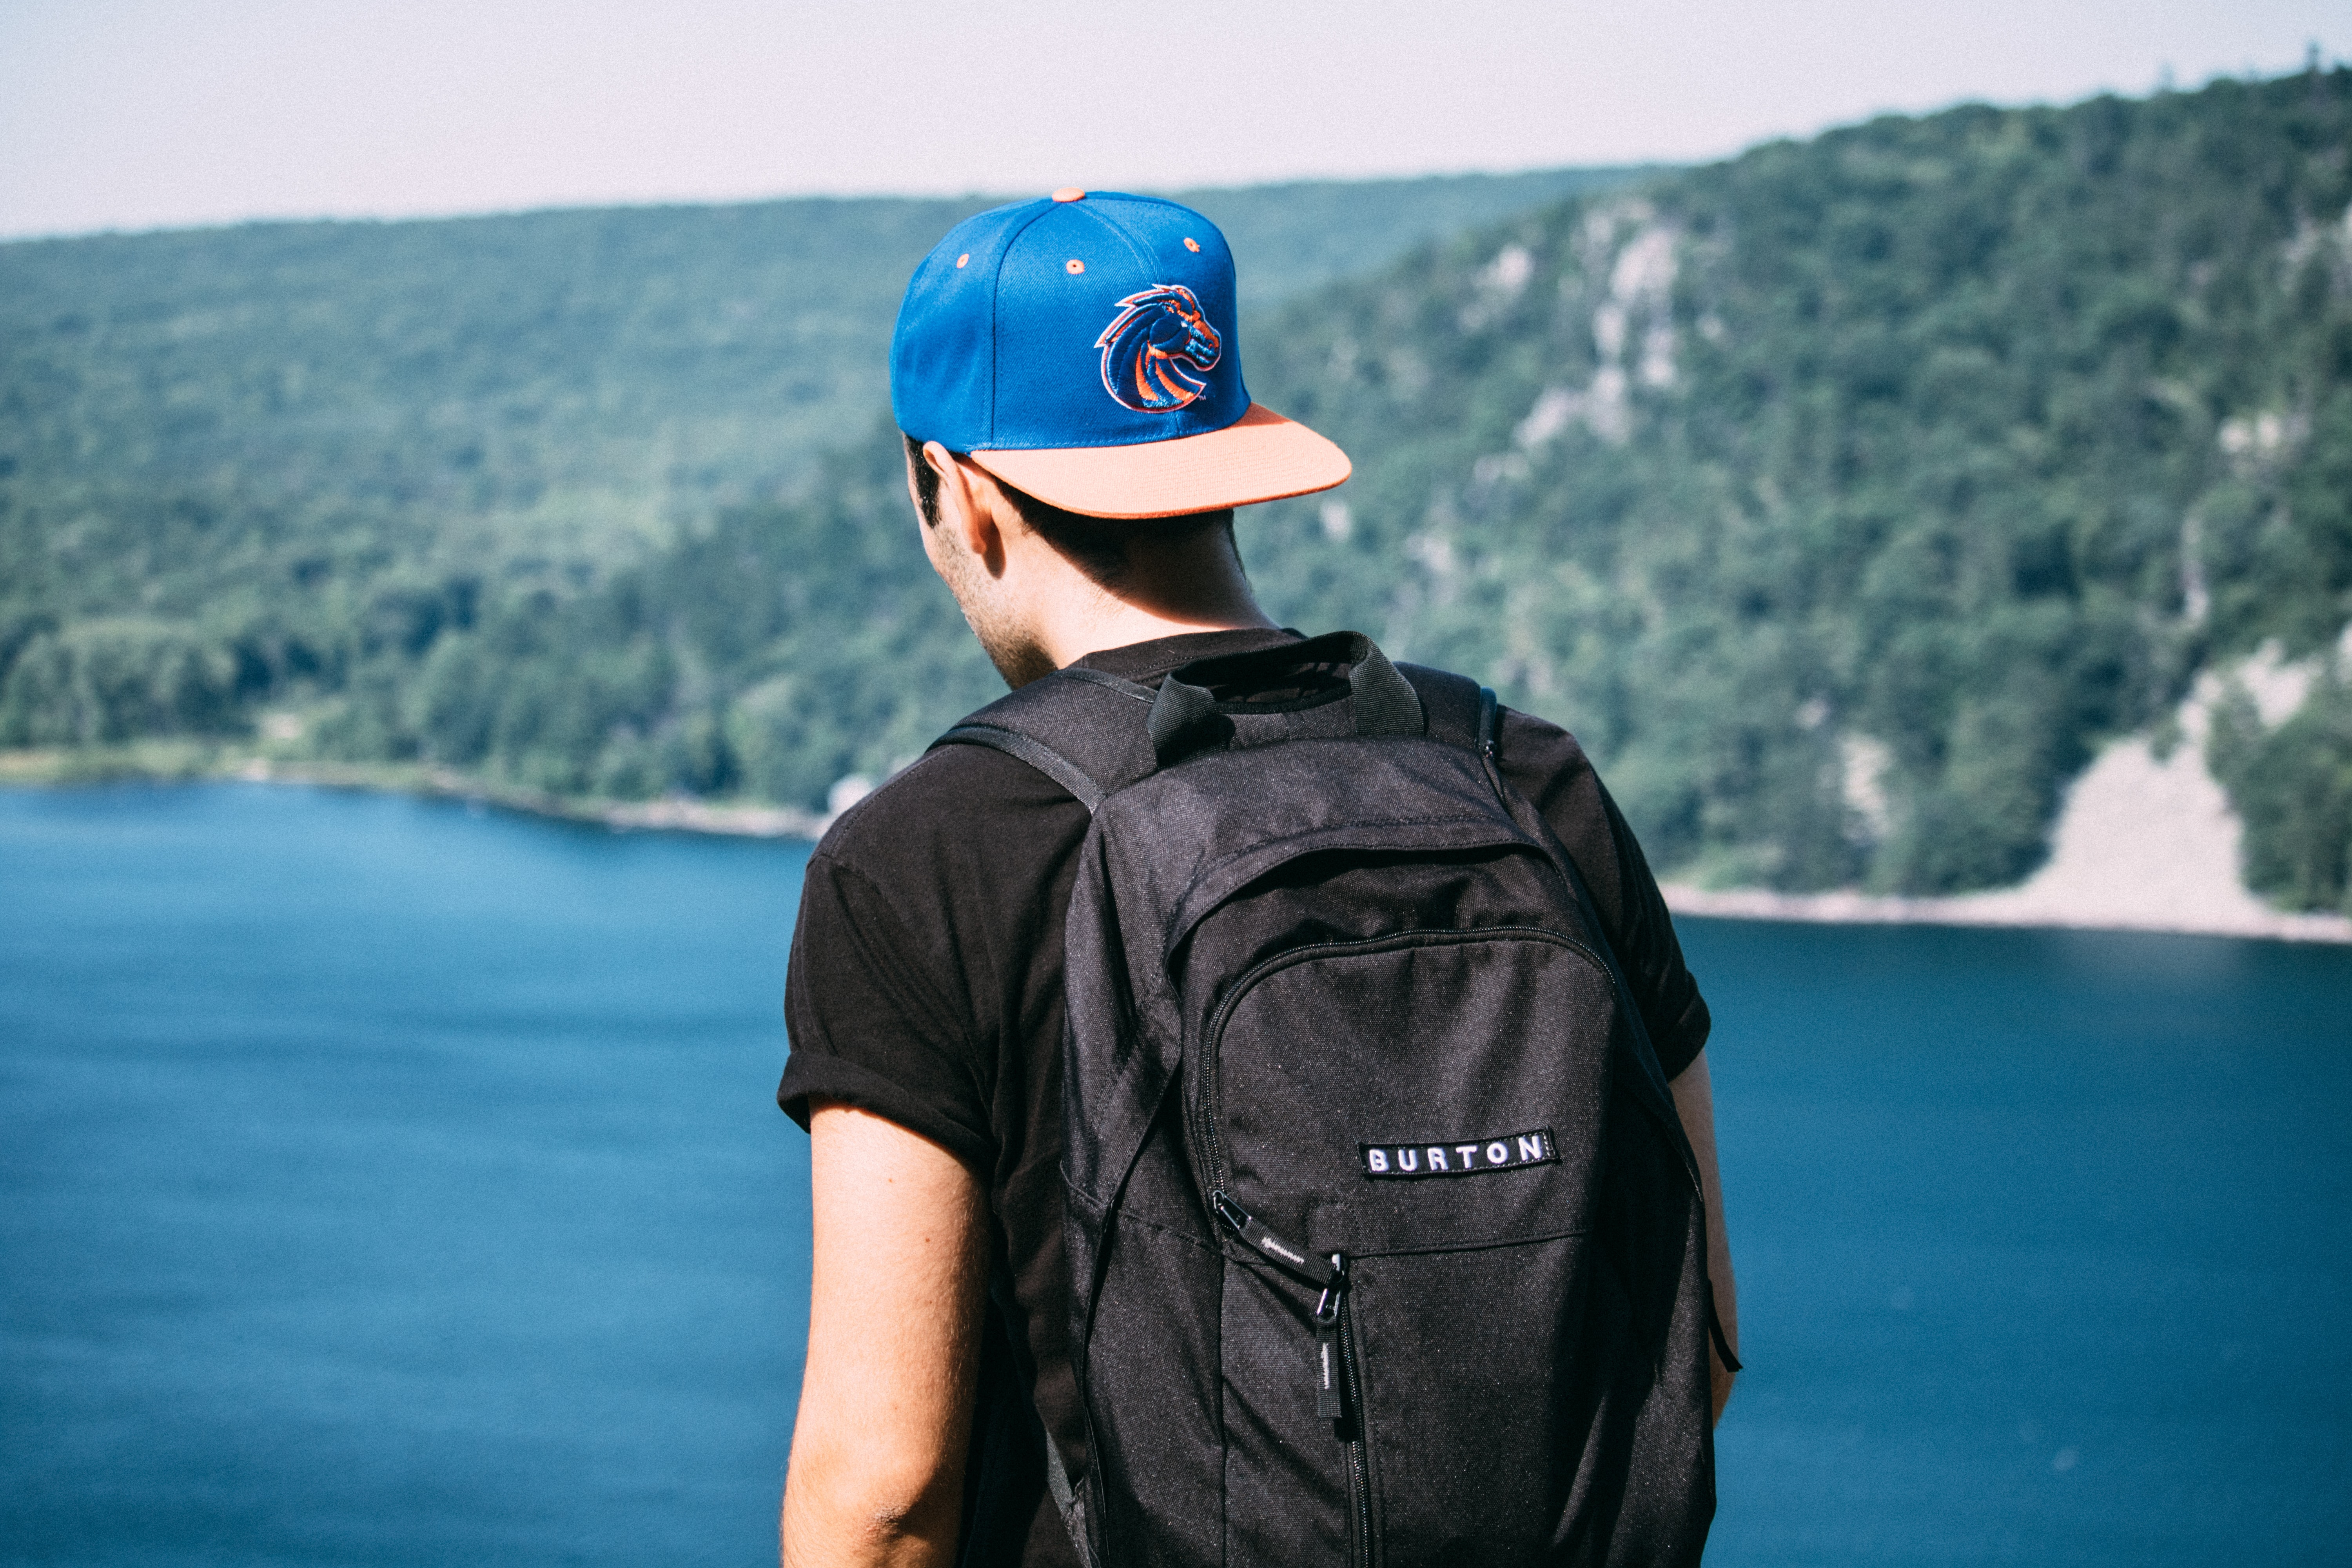 The back of a man wearing a backpack and cap backwards looking out in devil's lake by forest of trees